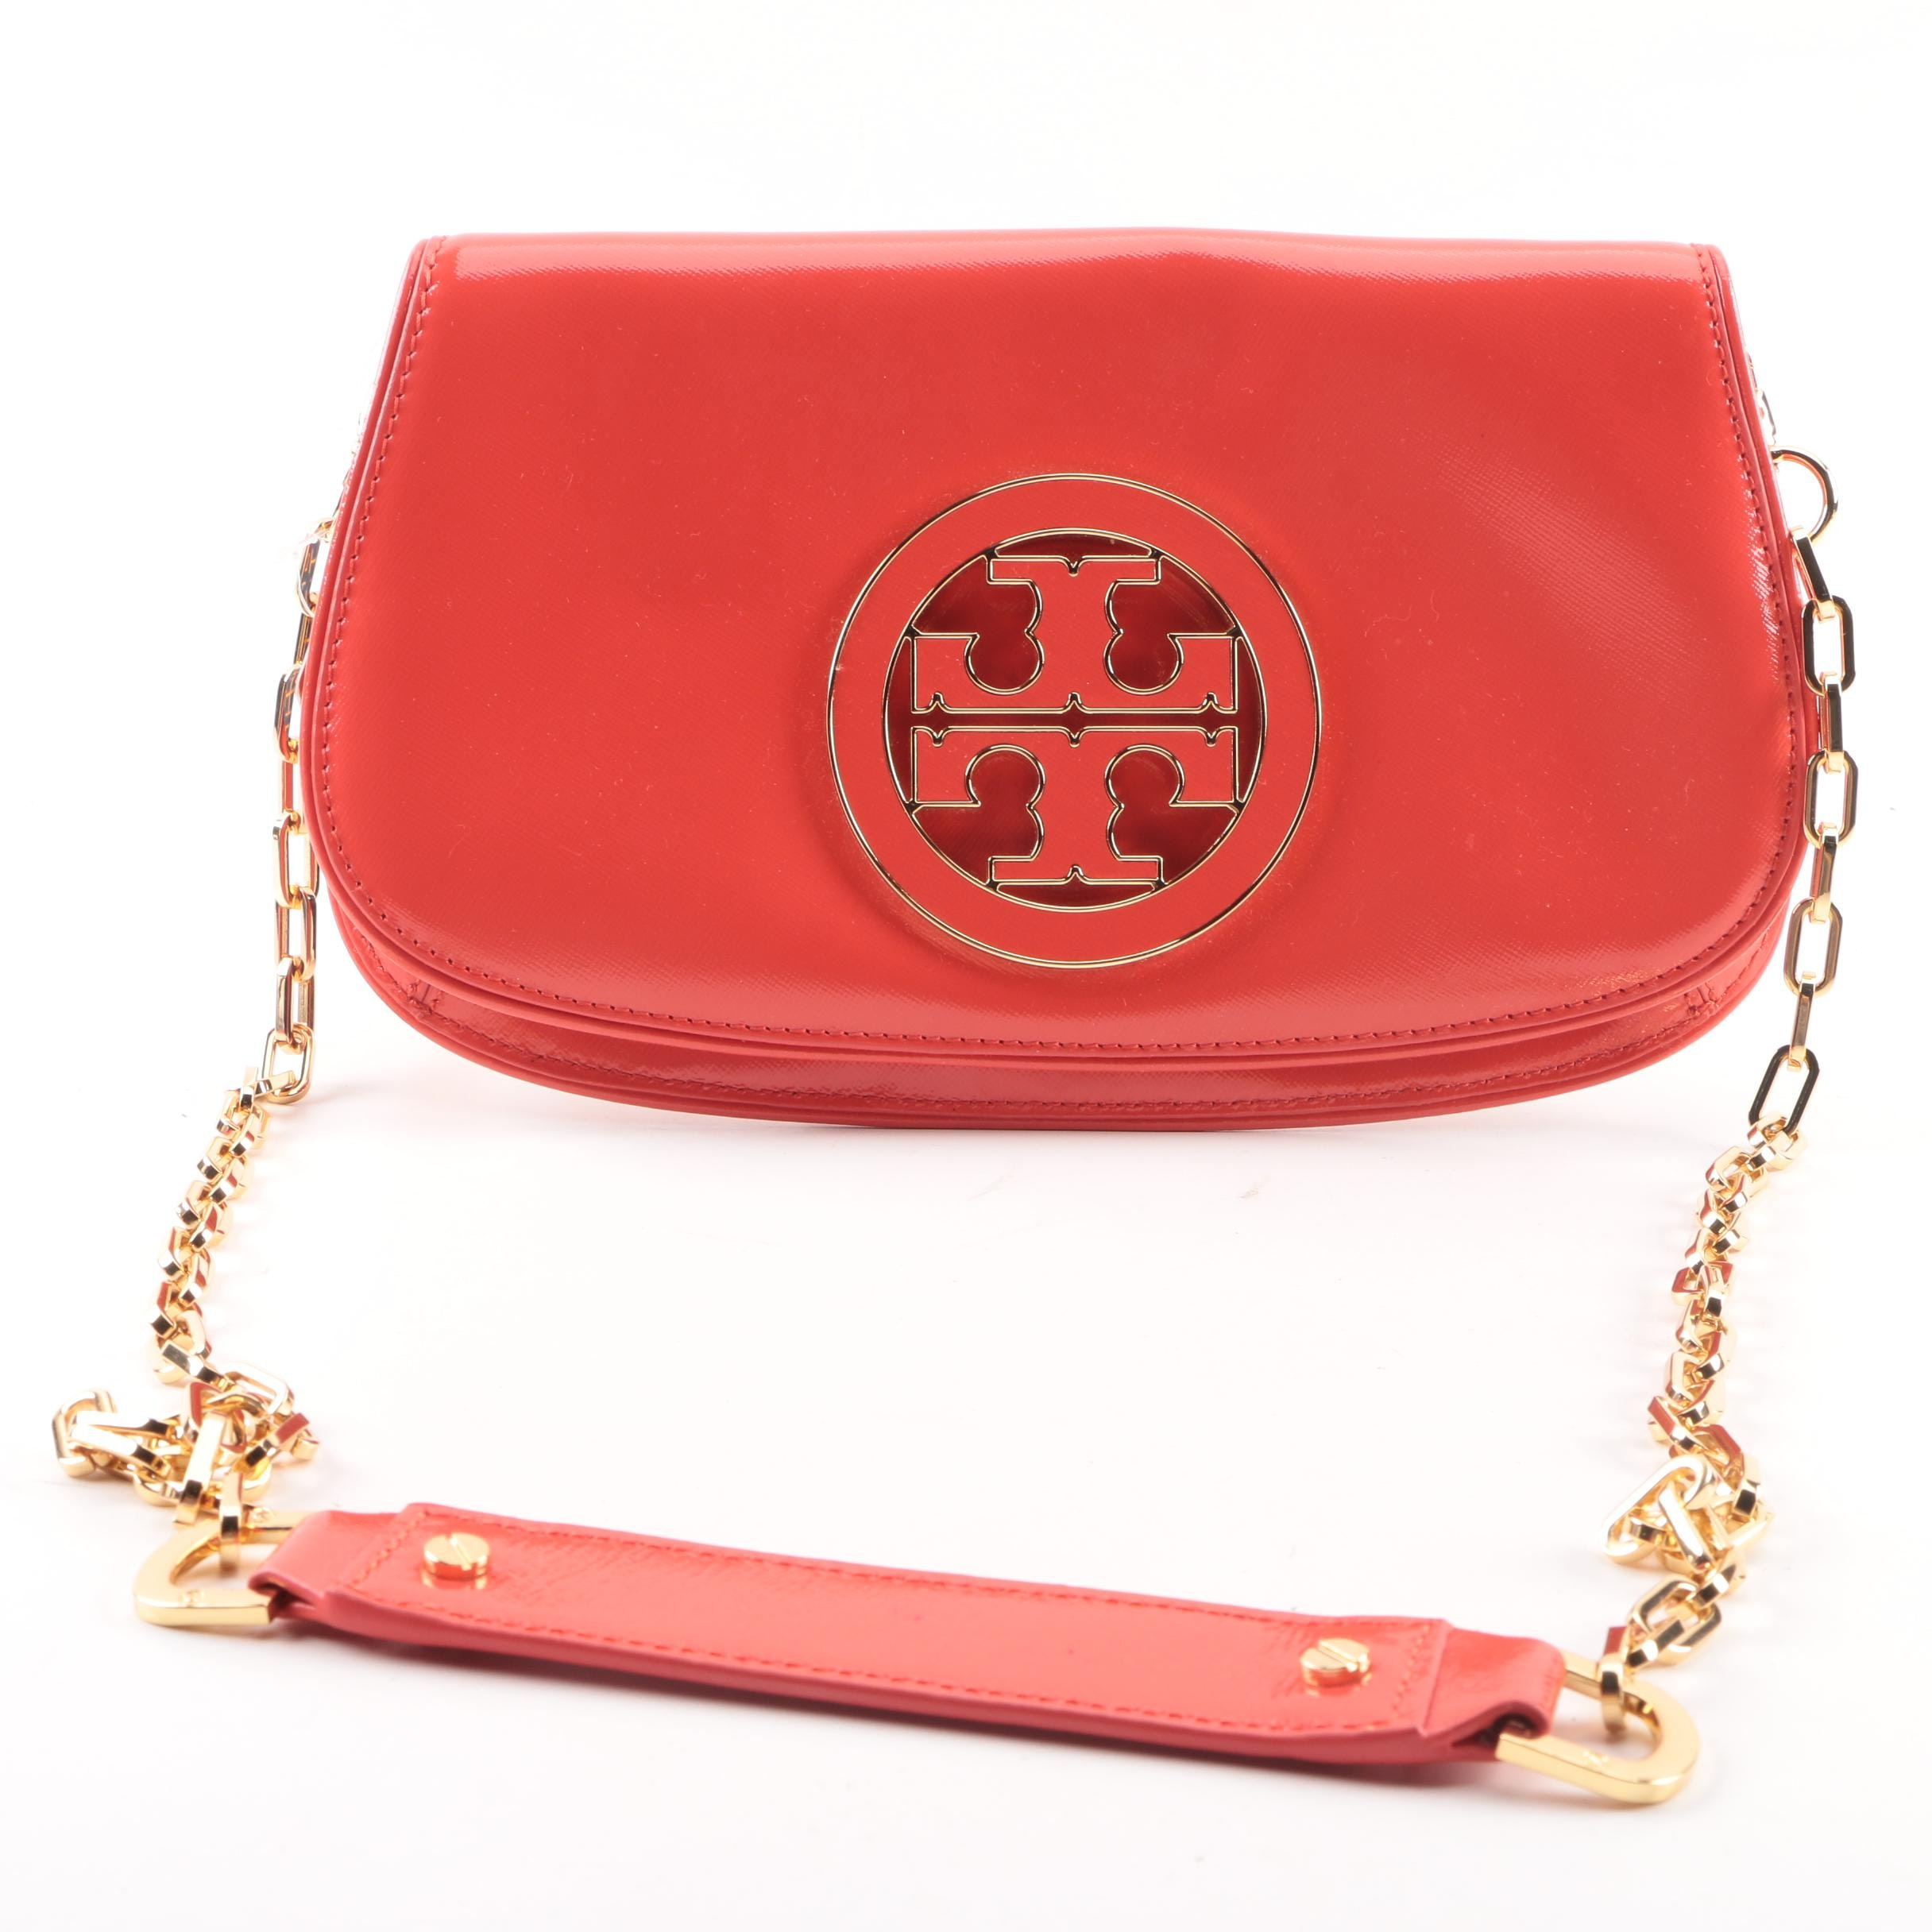 Tory Burch Robinson Poppy Red Logo Handbag